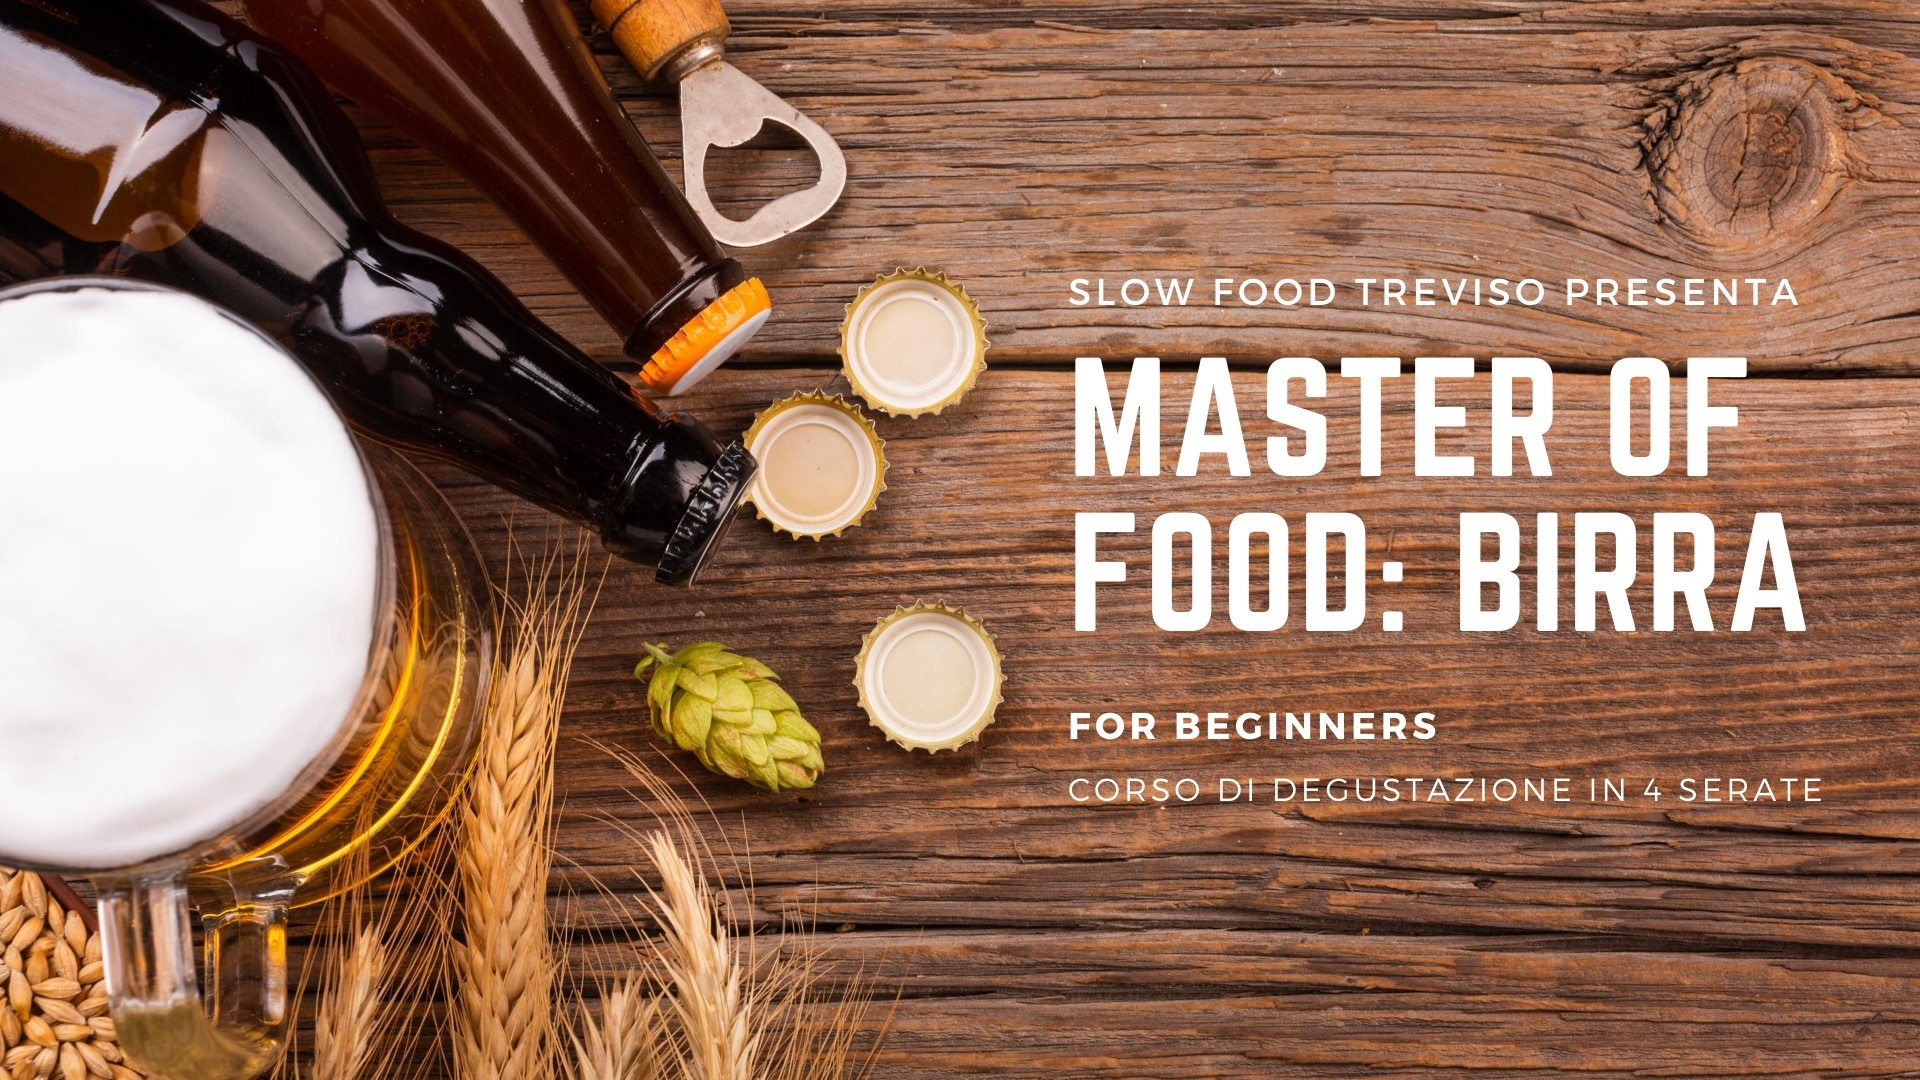 Master of food: birra